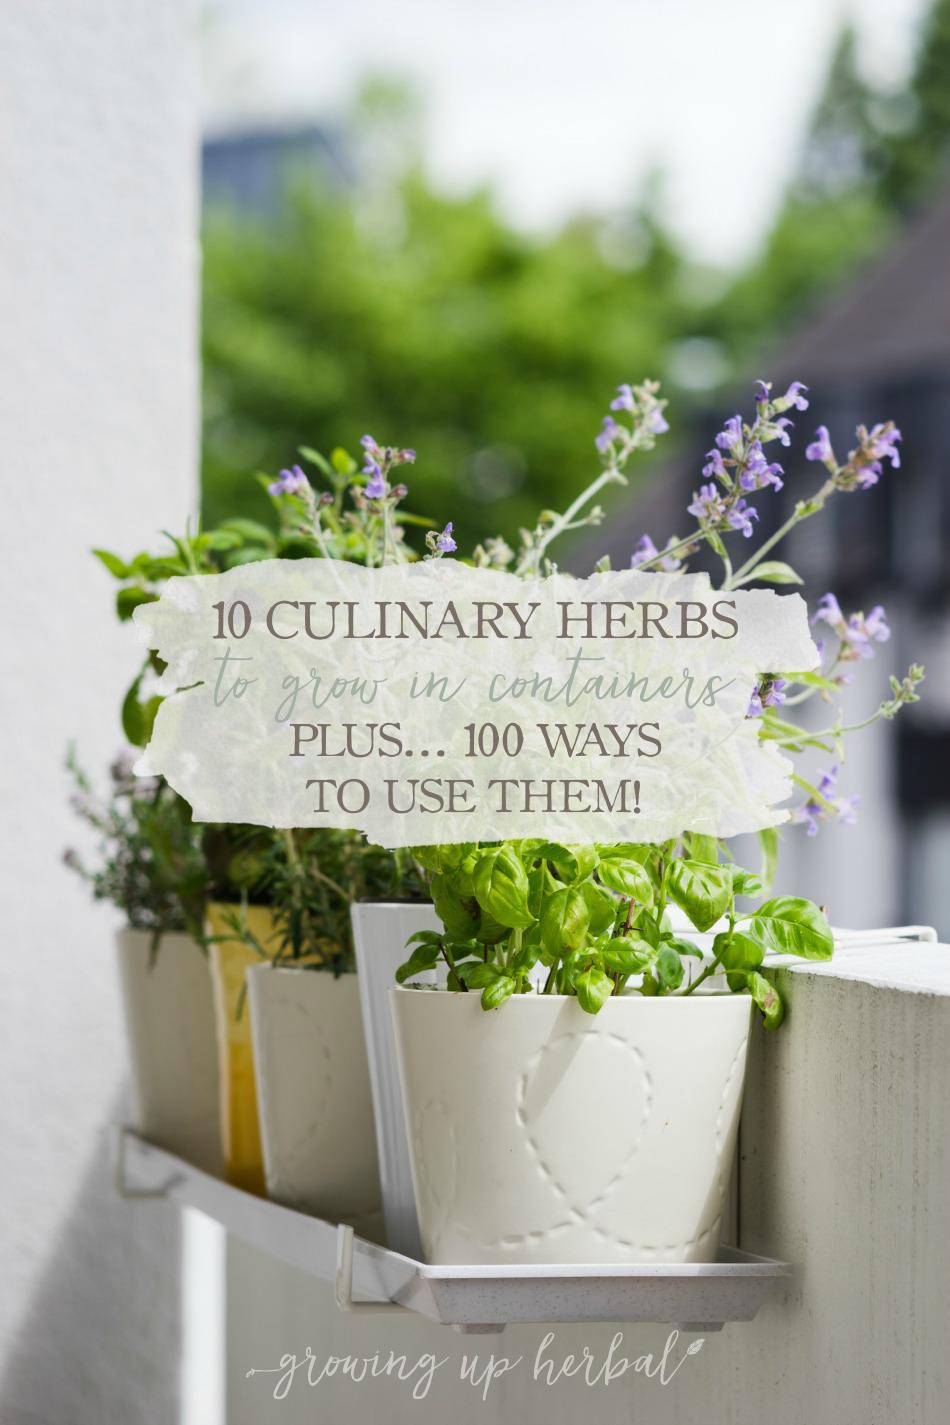 10 Culinary Herbs To Grow In Containers (+ 100 Ways To Use Them)